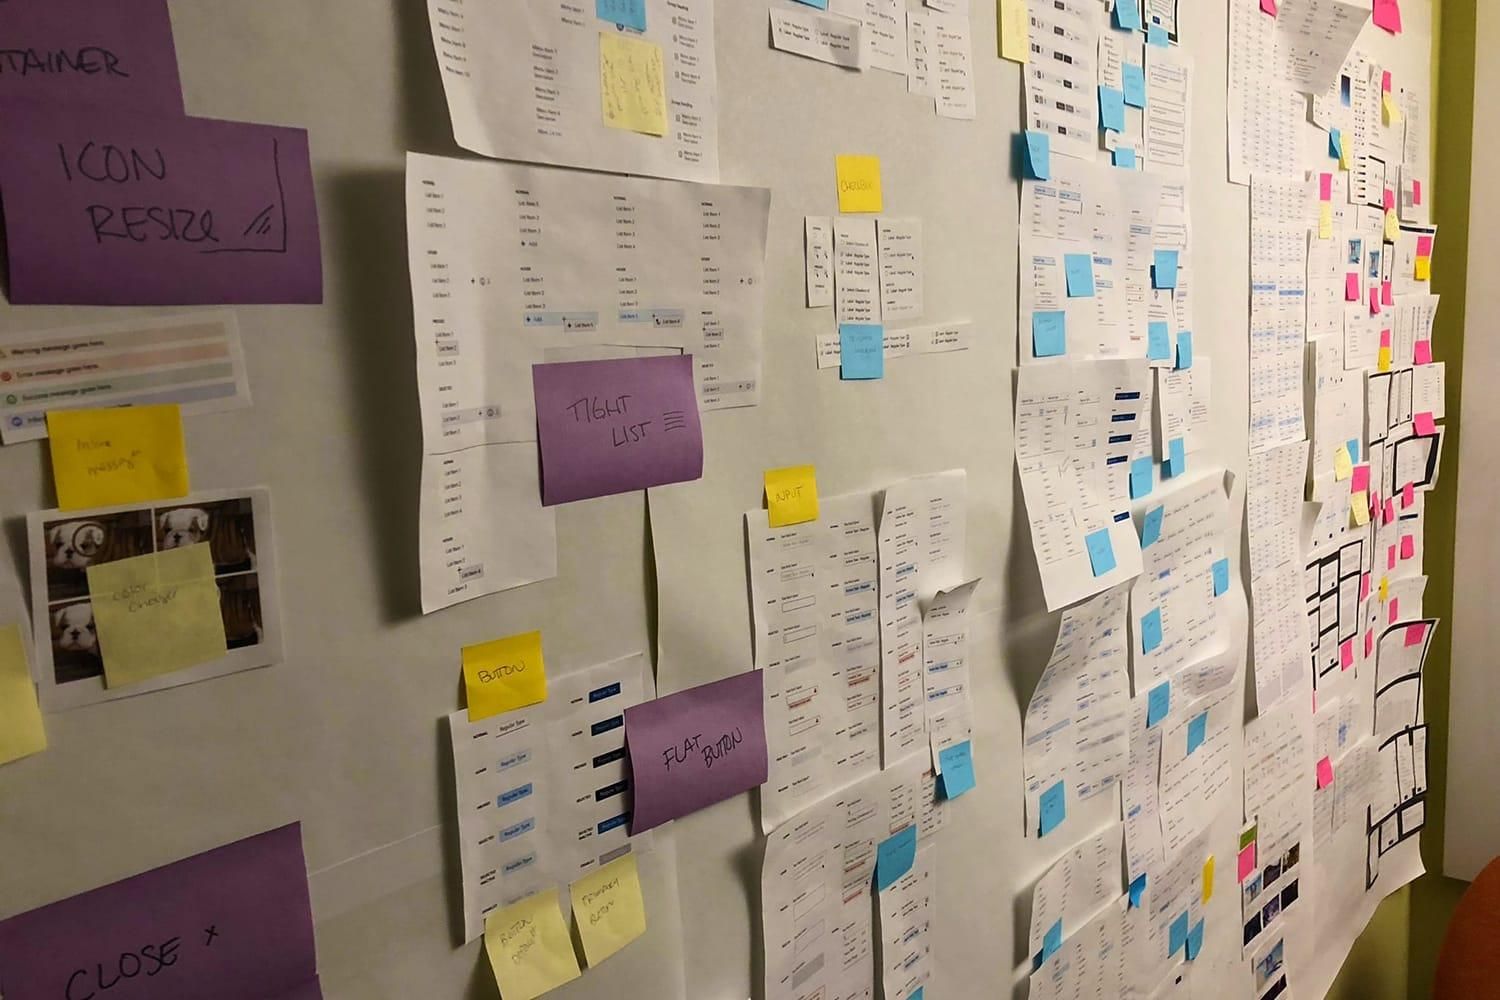 Wall of sticky notes in design center